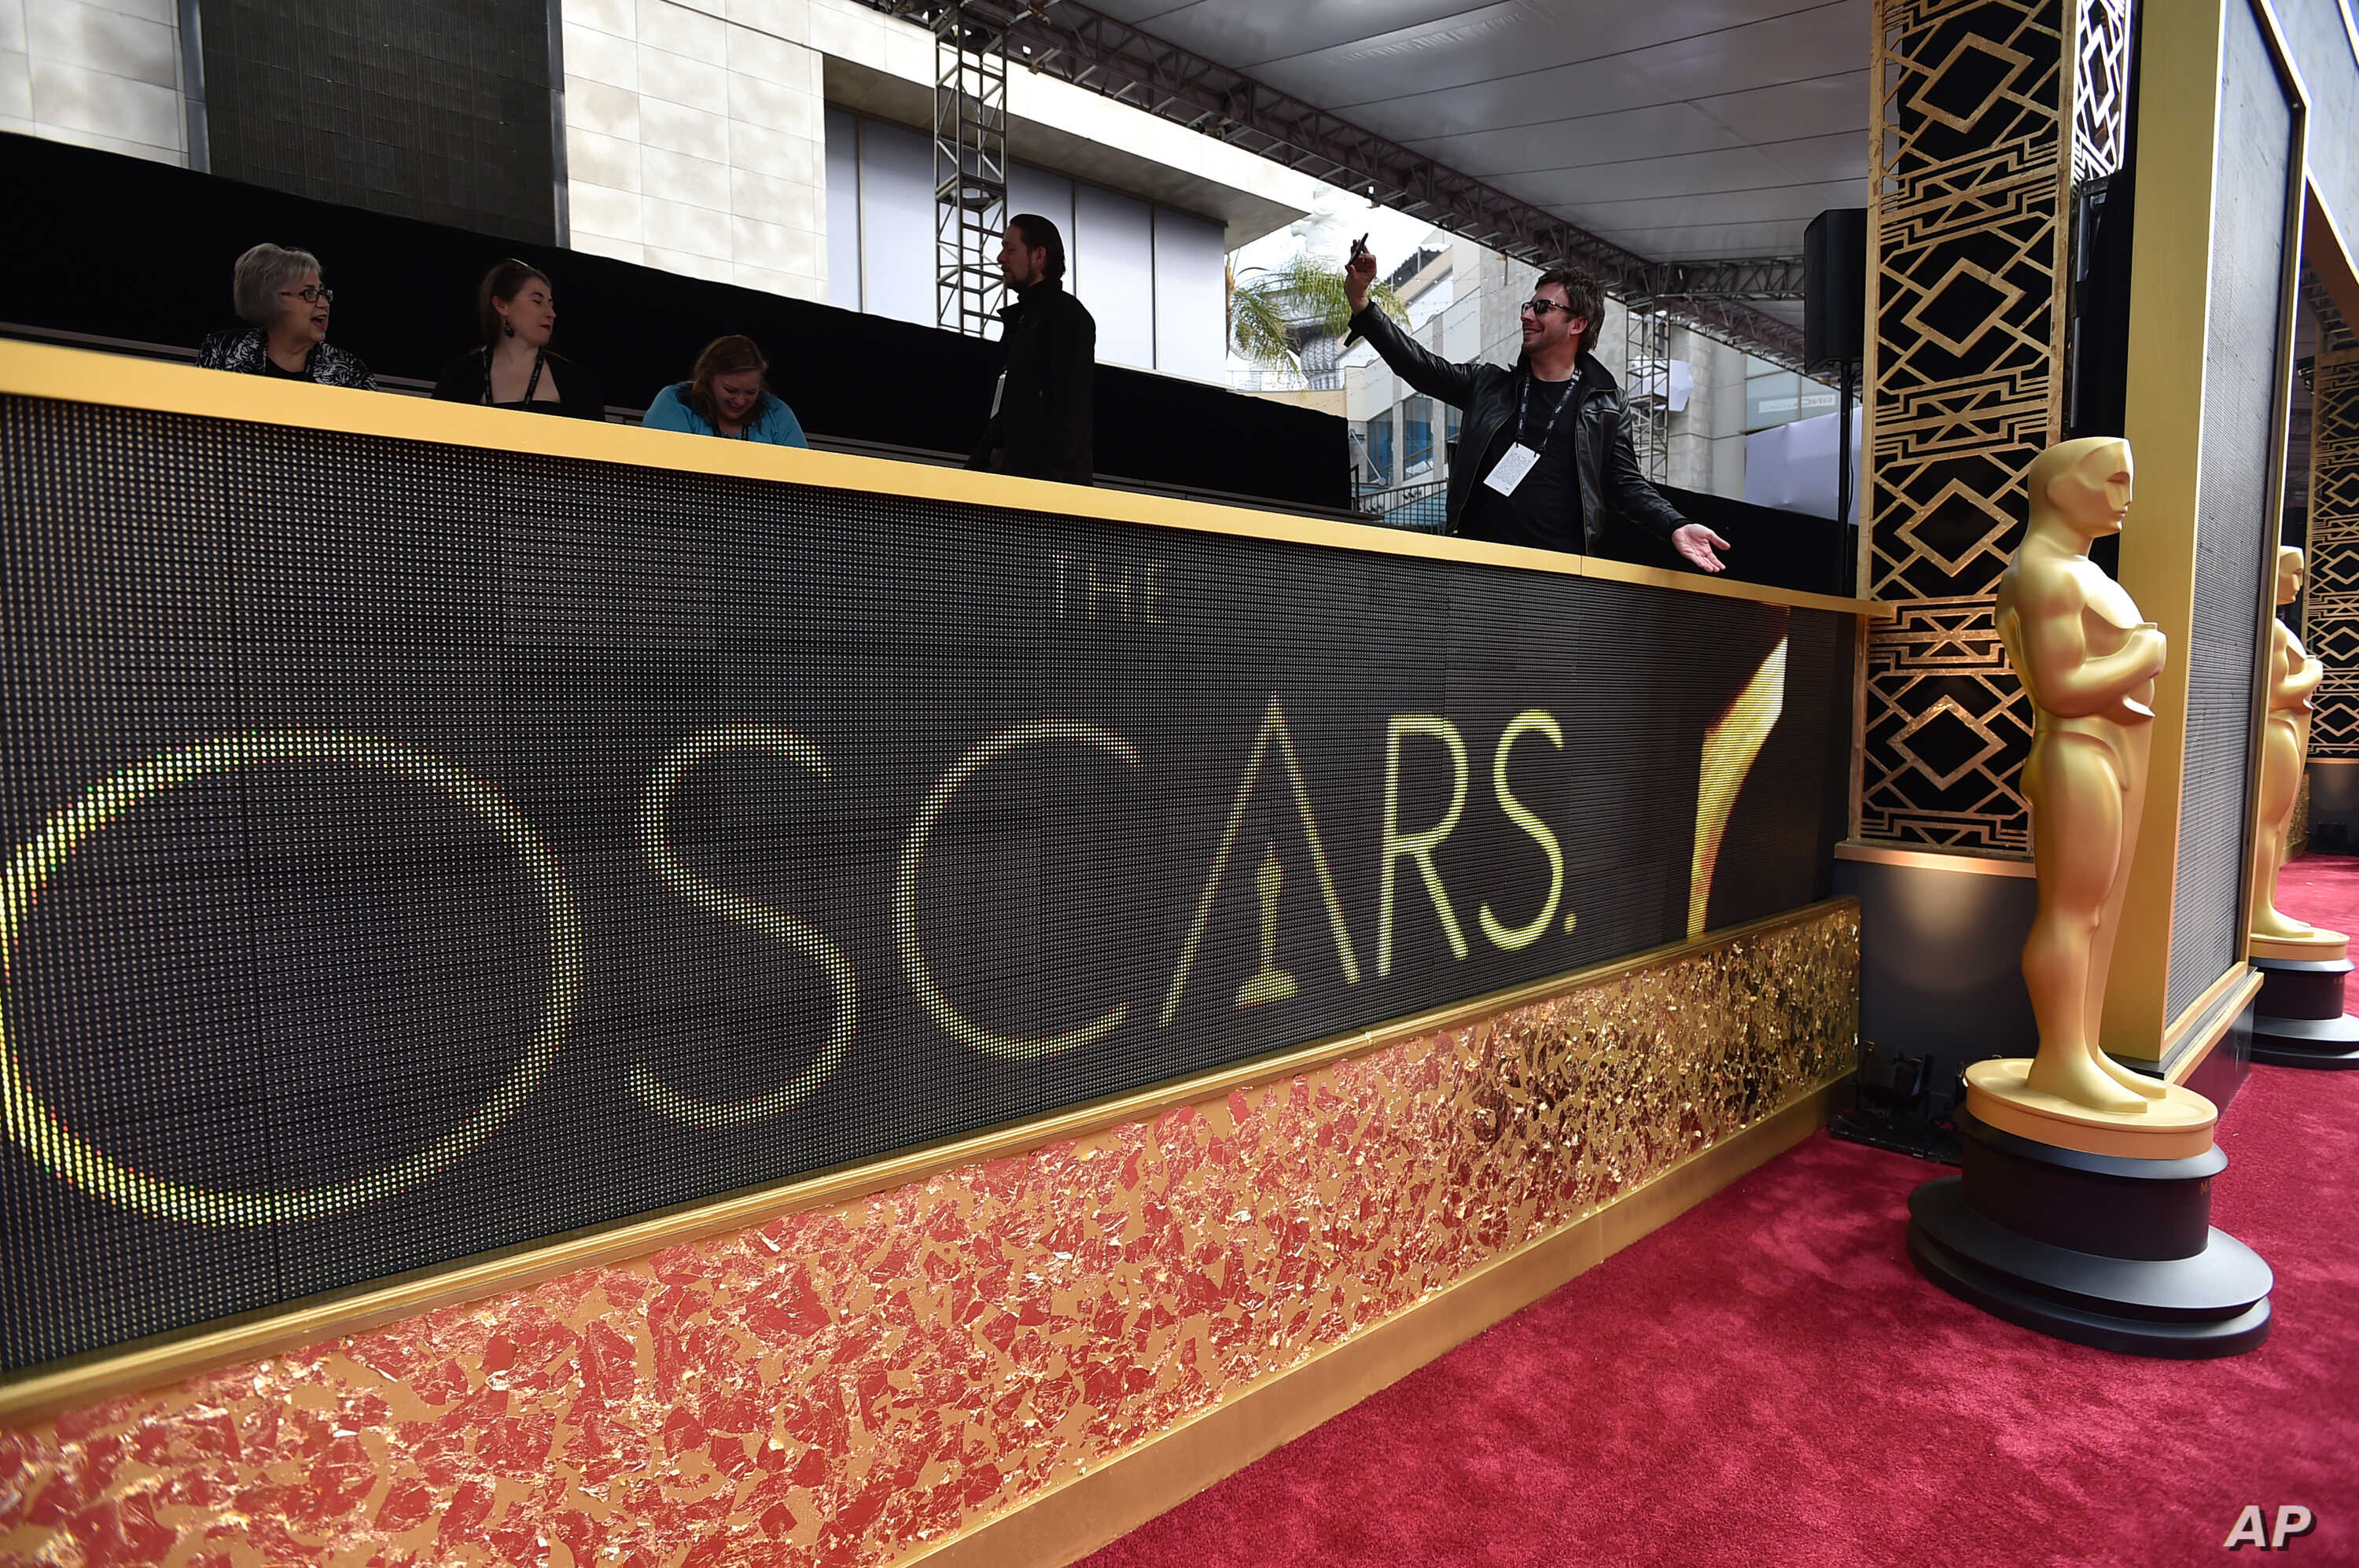 An Academy Award statuette is seen on display at Oscars at the Dolby Theatre in Los Angeles, Feb. 28, 2016.